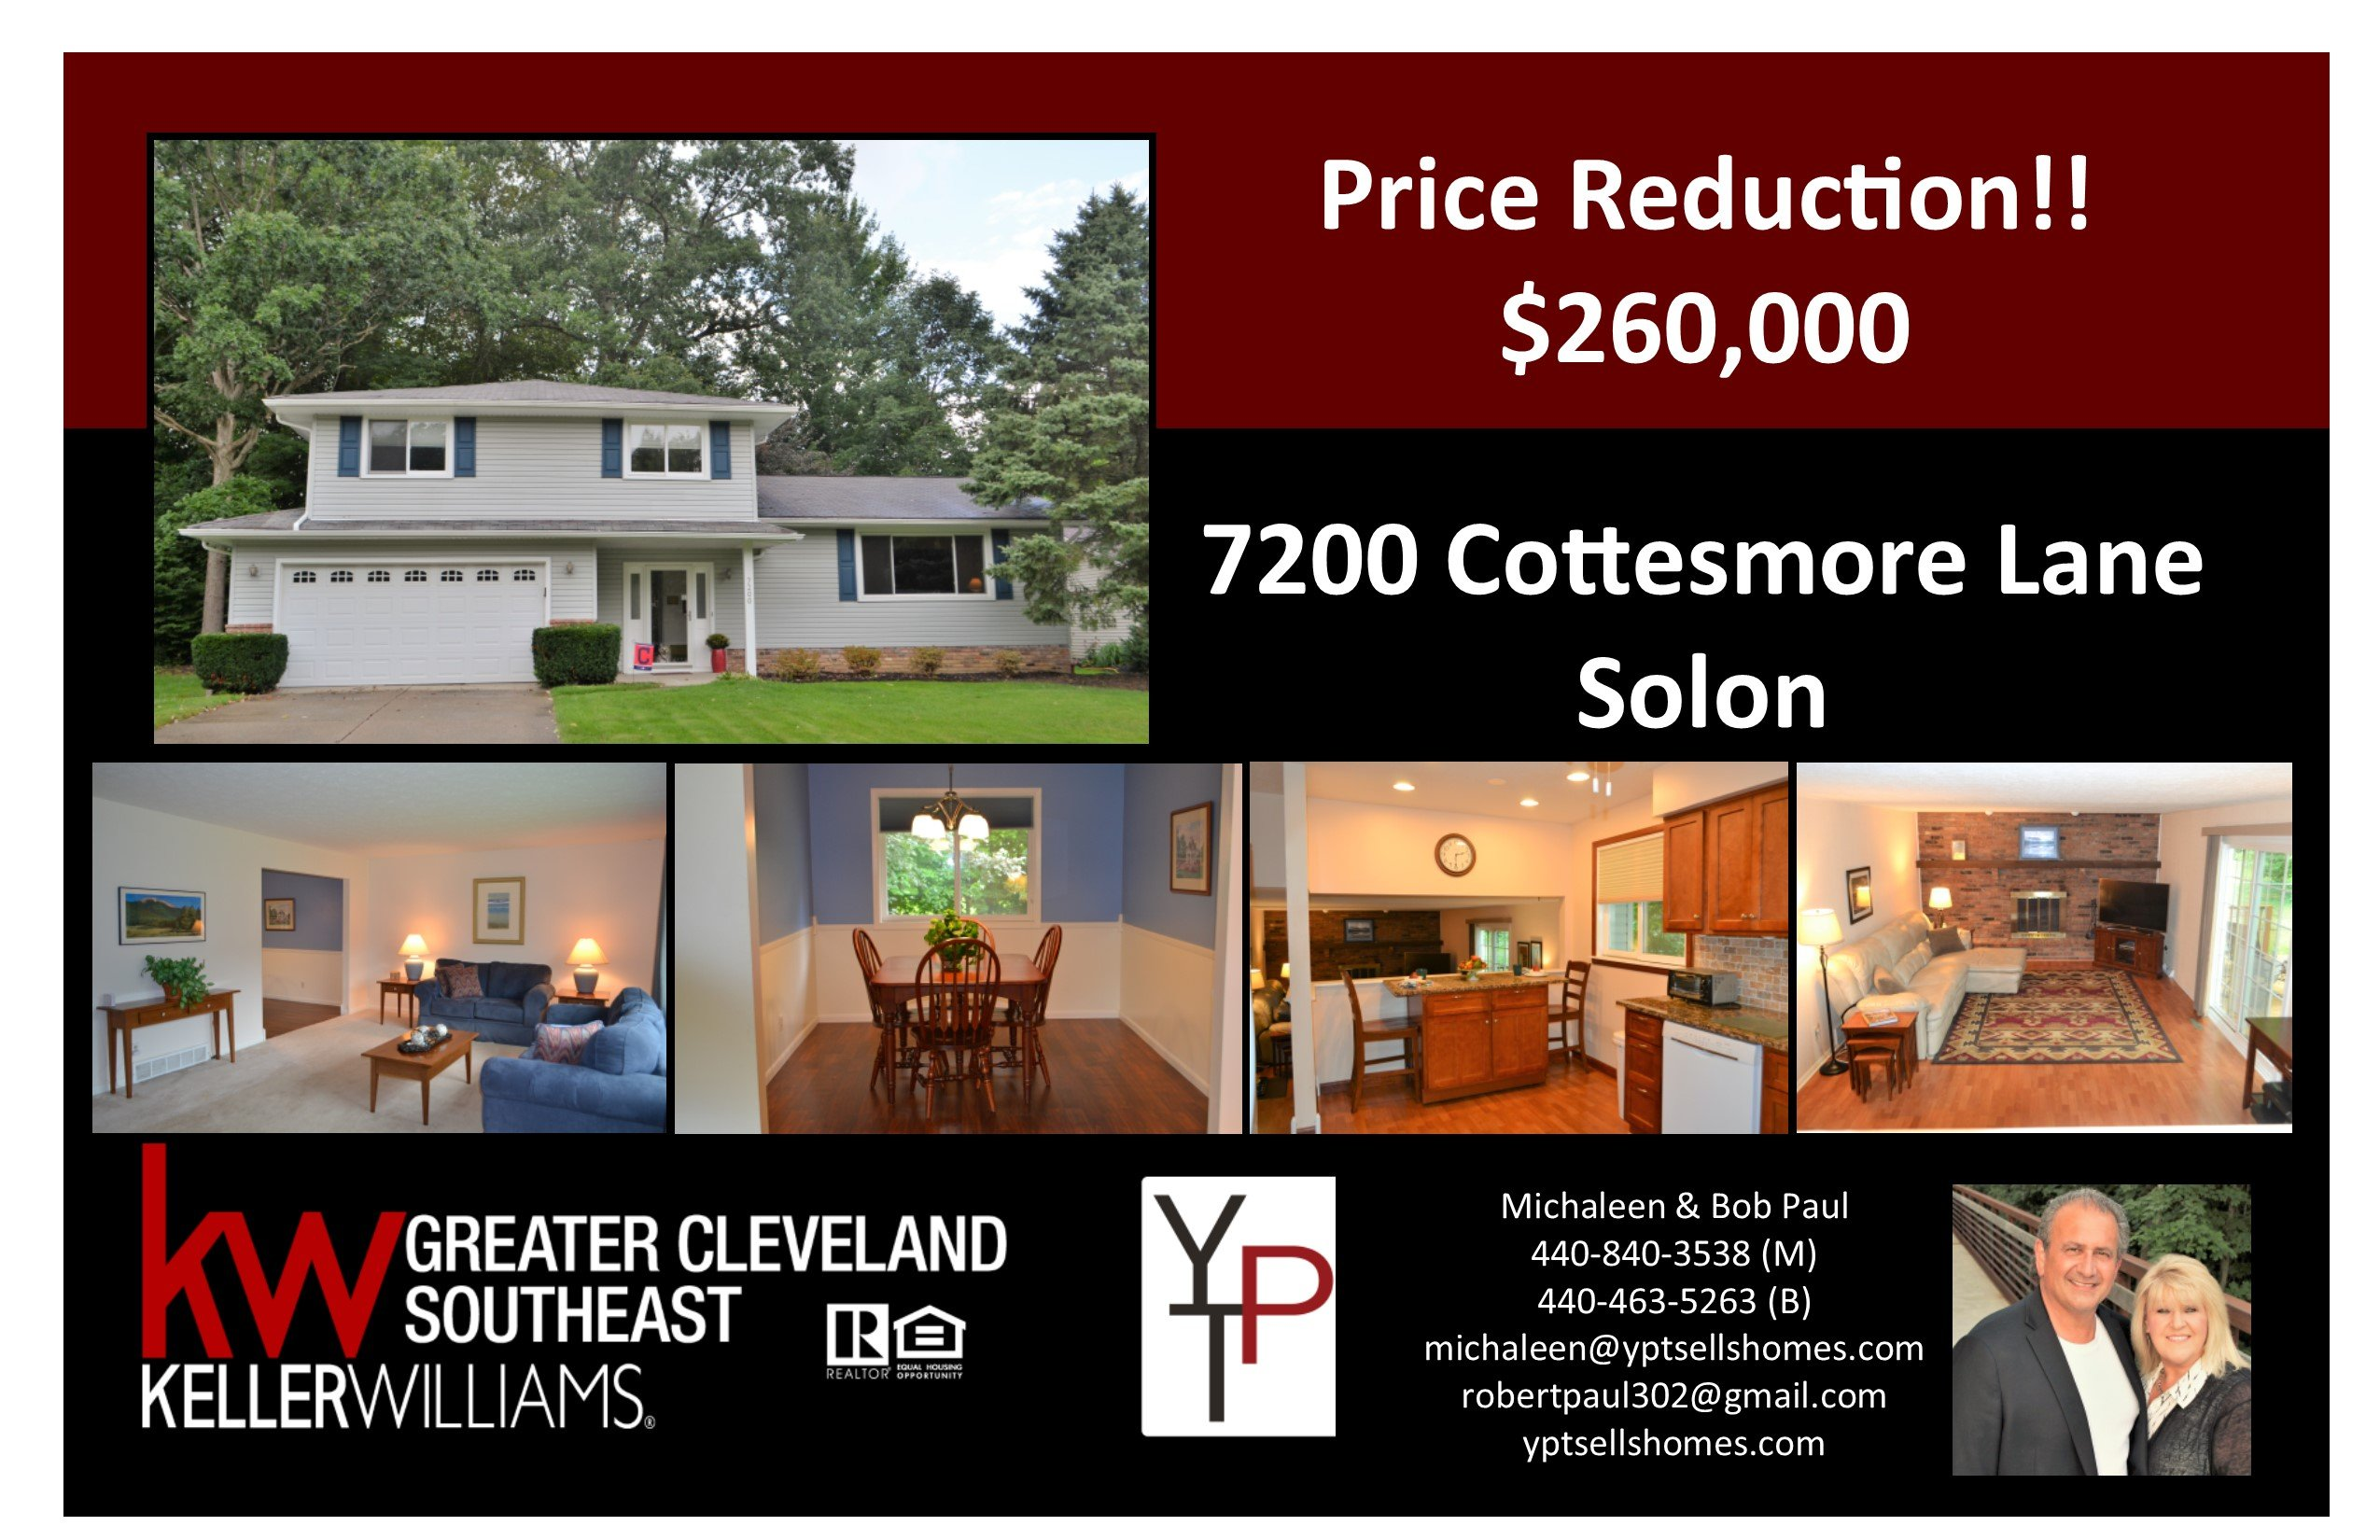 Price Reduction!! 7200 Cottesmore Lane- Solon!!